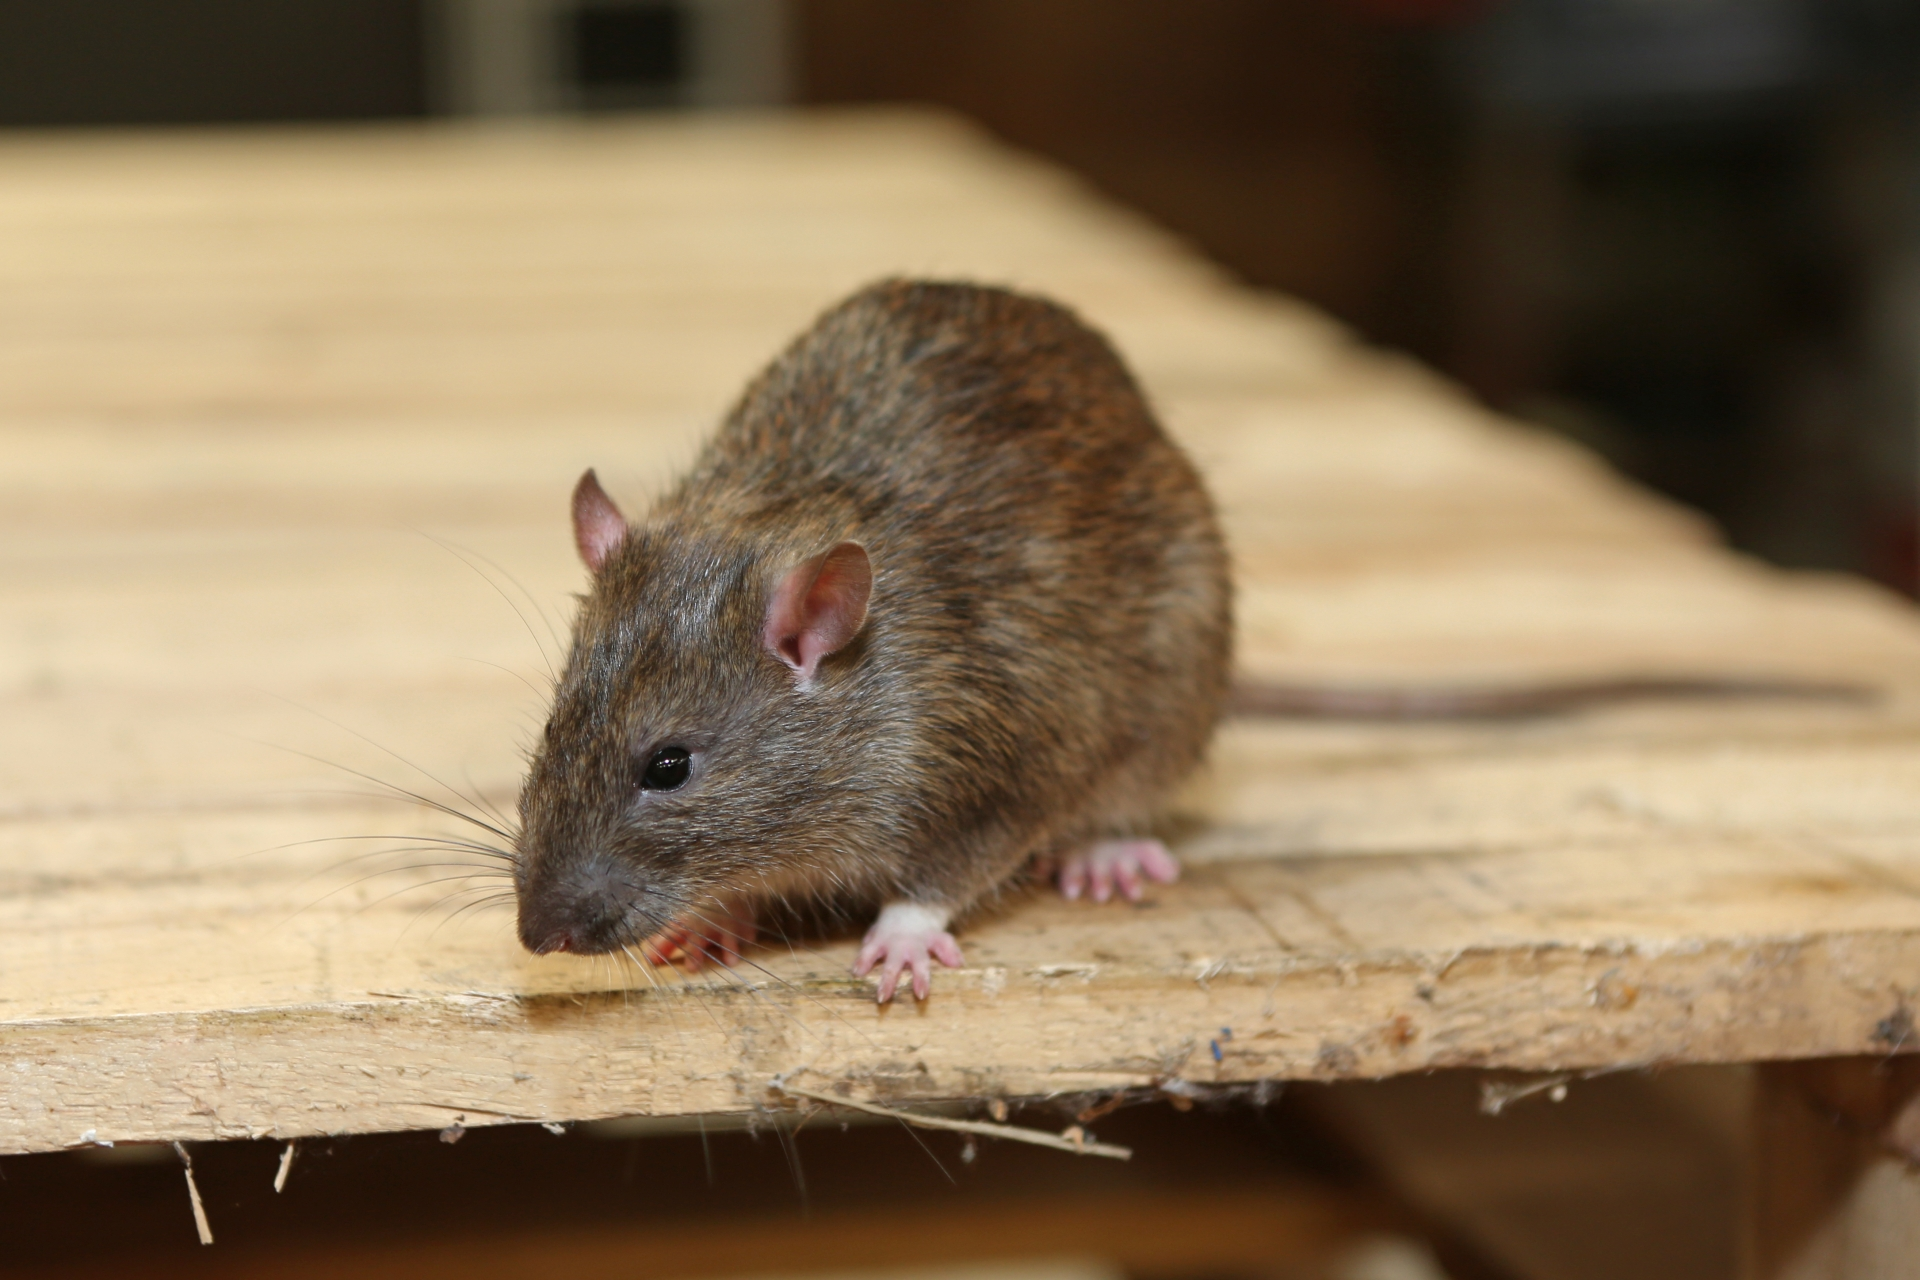 Rat Infestation, Pest Control in Kew, North Sheen, TW9. Call Now 020 8166 9746